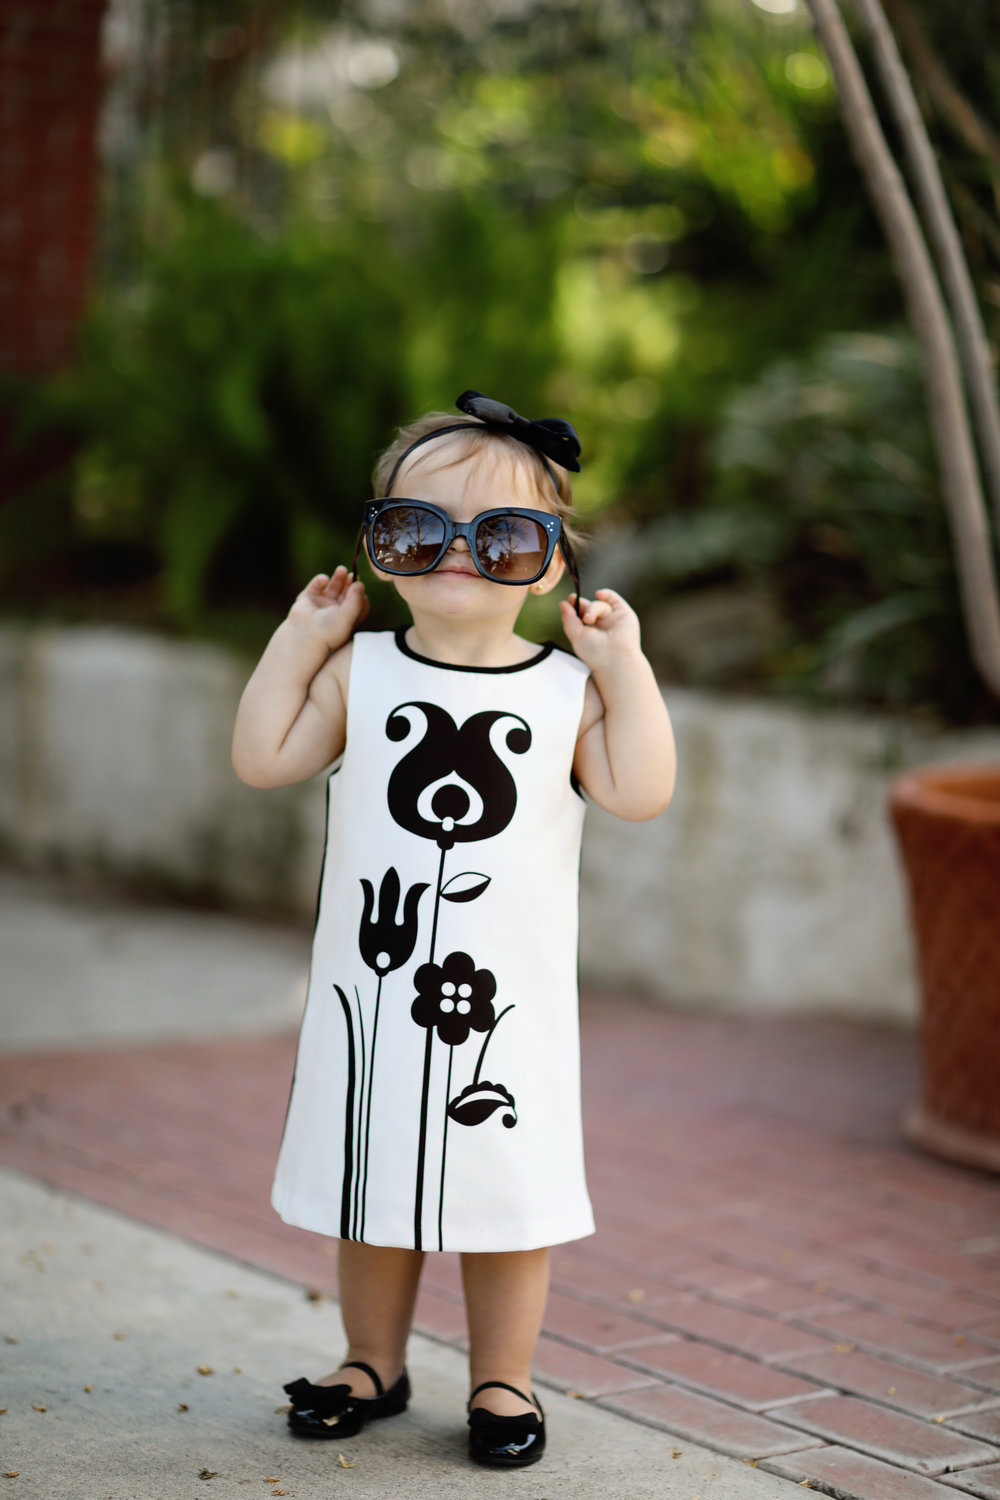 daughter of fashion blogger.  Toddler in black and white dress.  Fine art photo